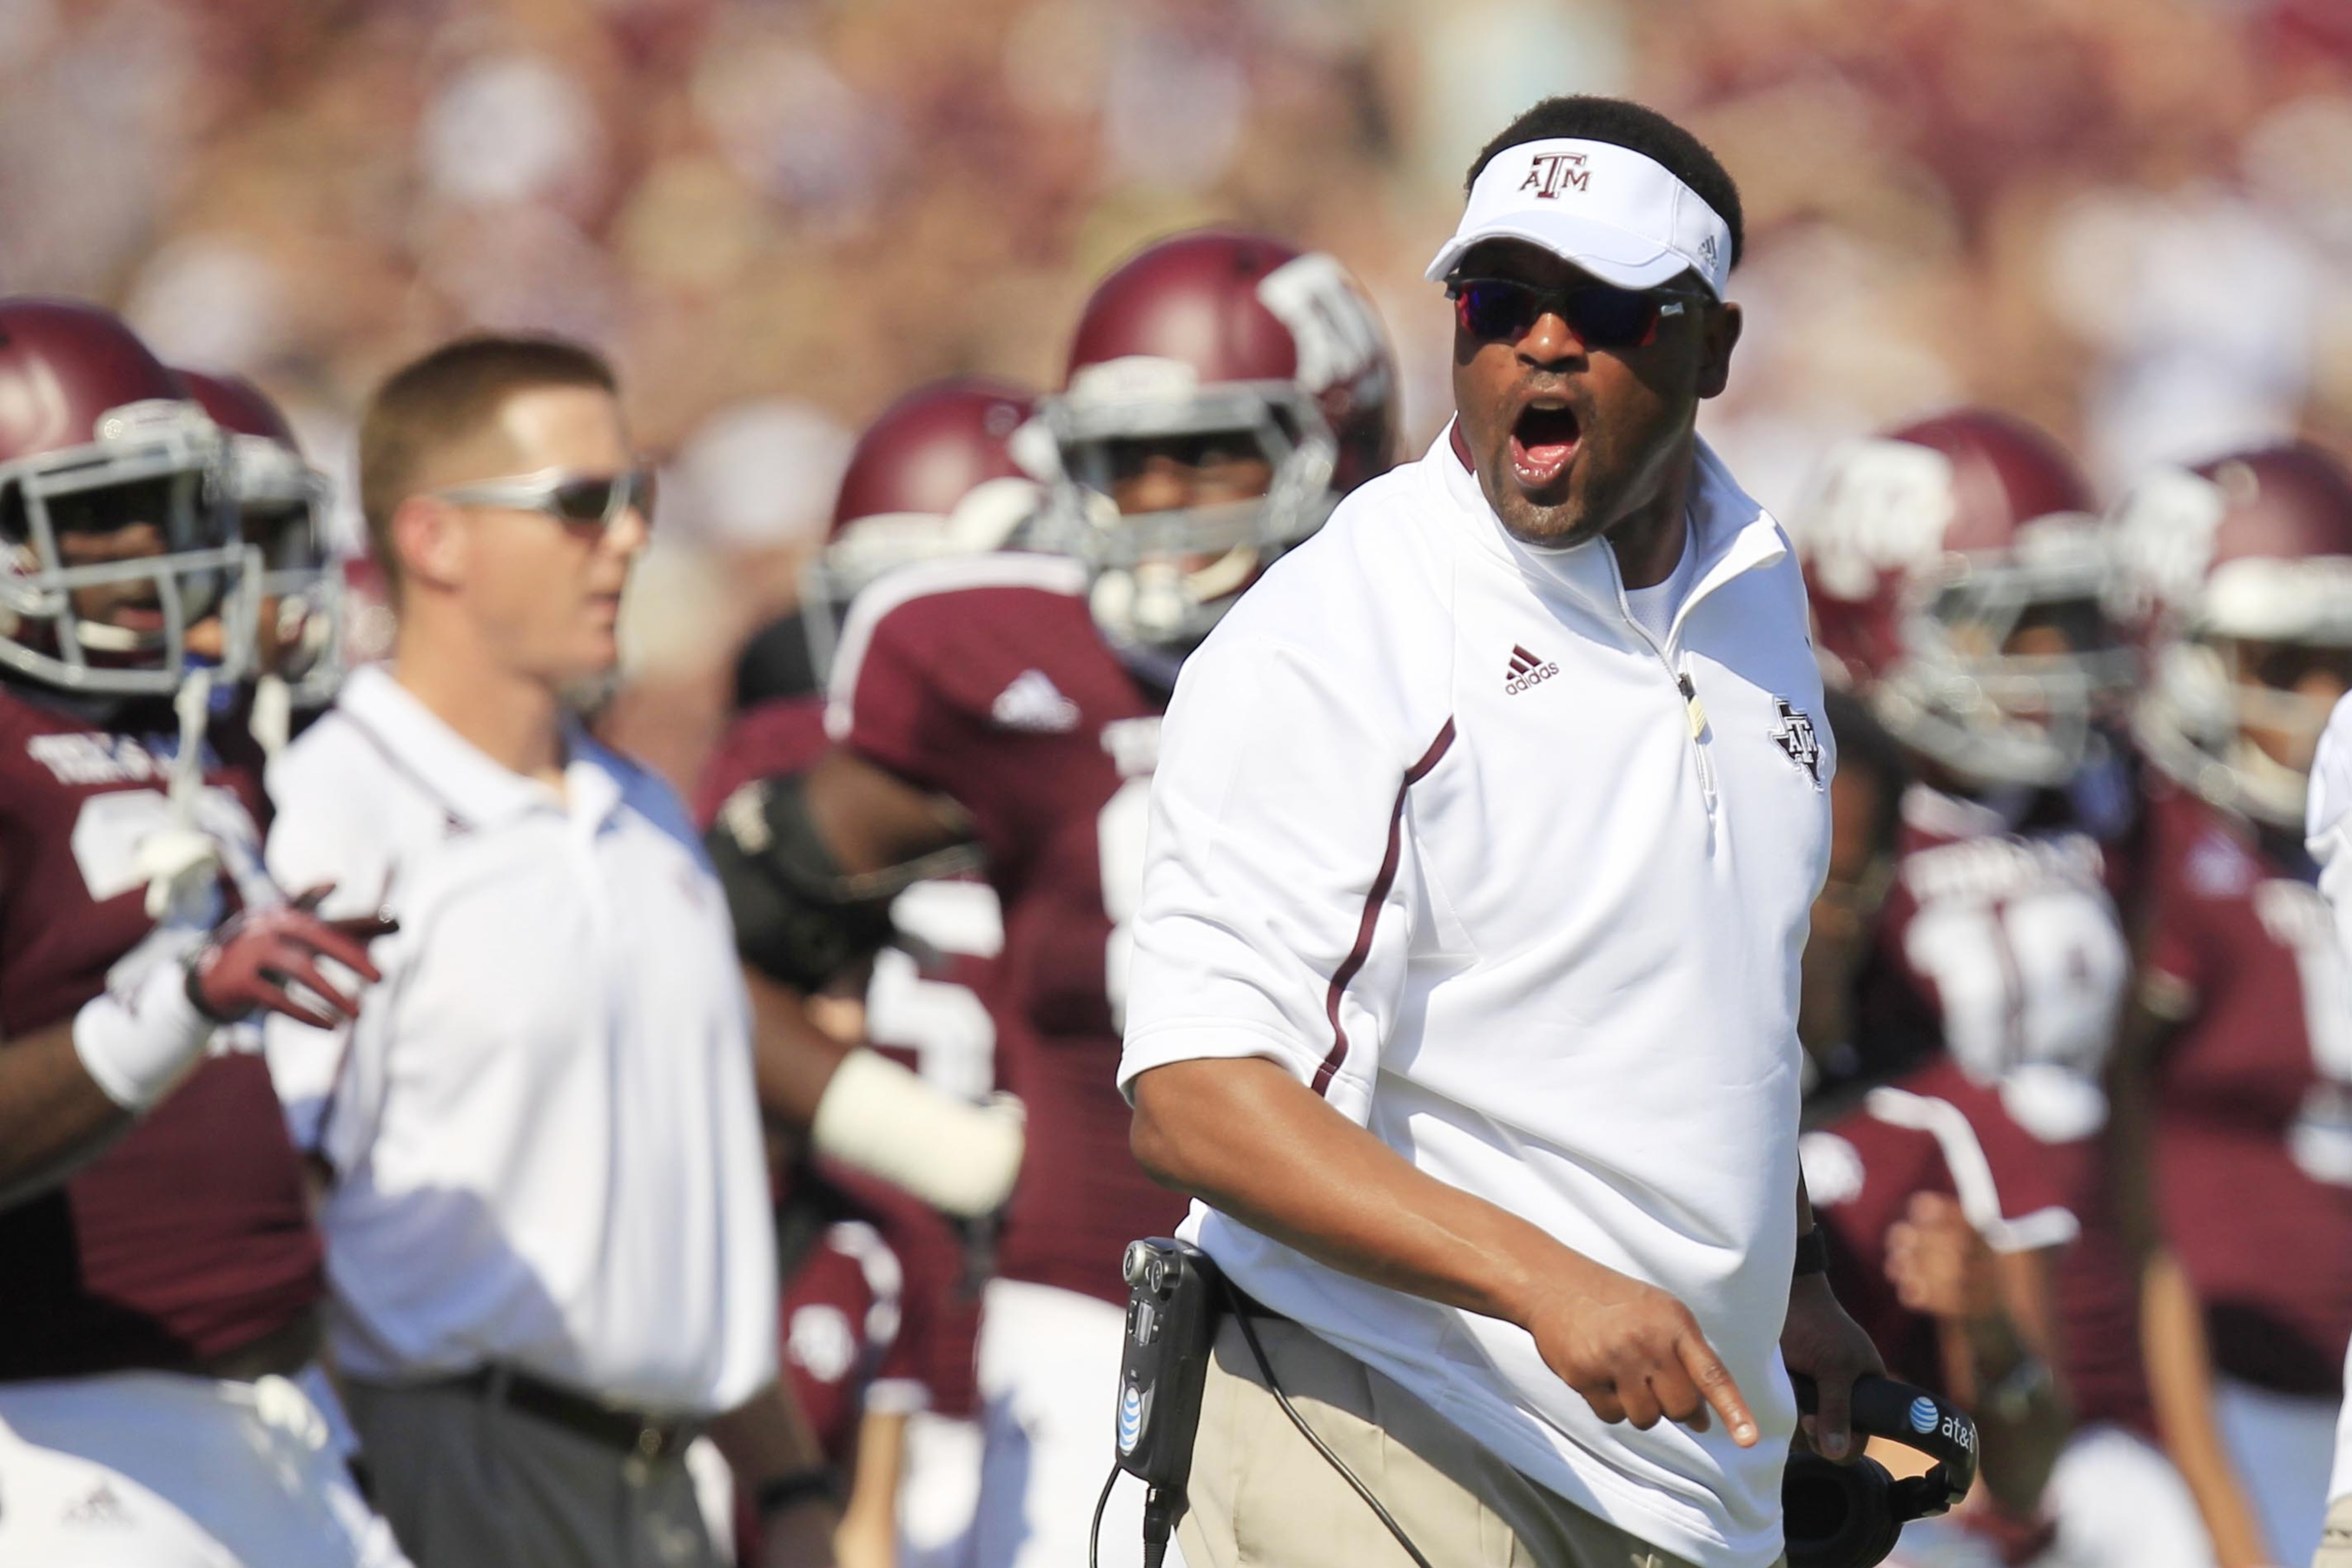 Kevin Sumlin 'top choice' for USC job, according to report